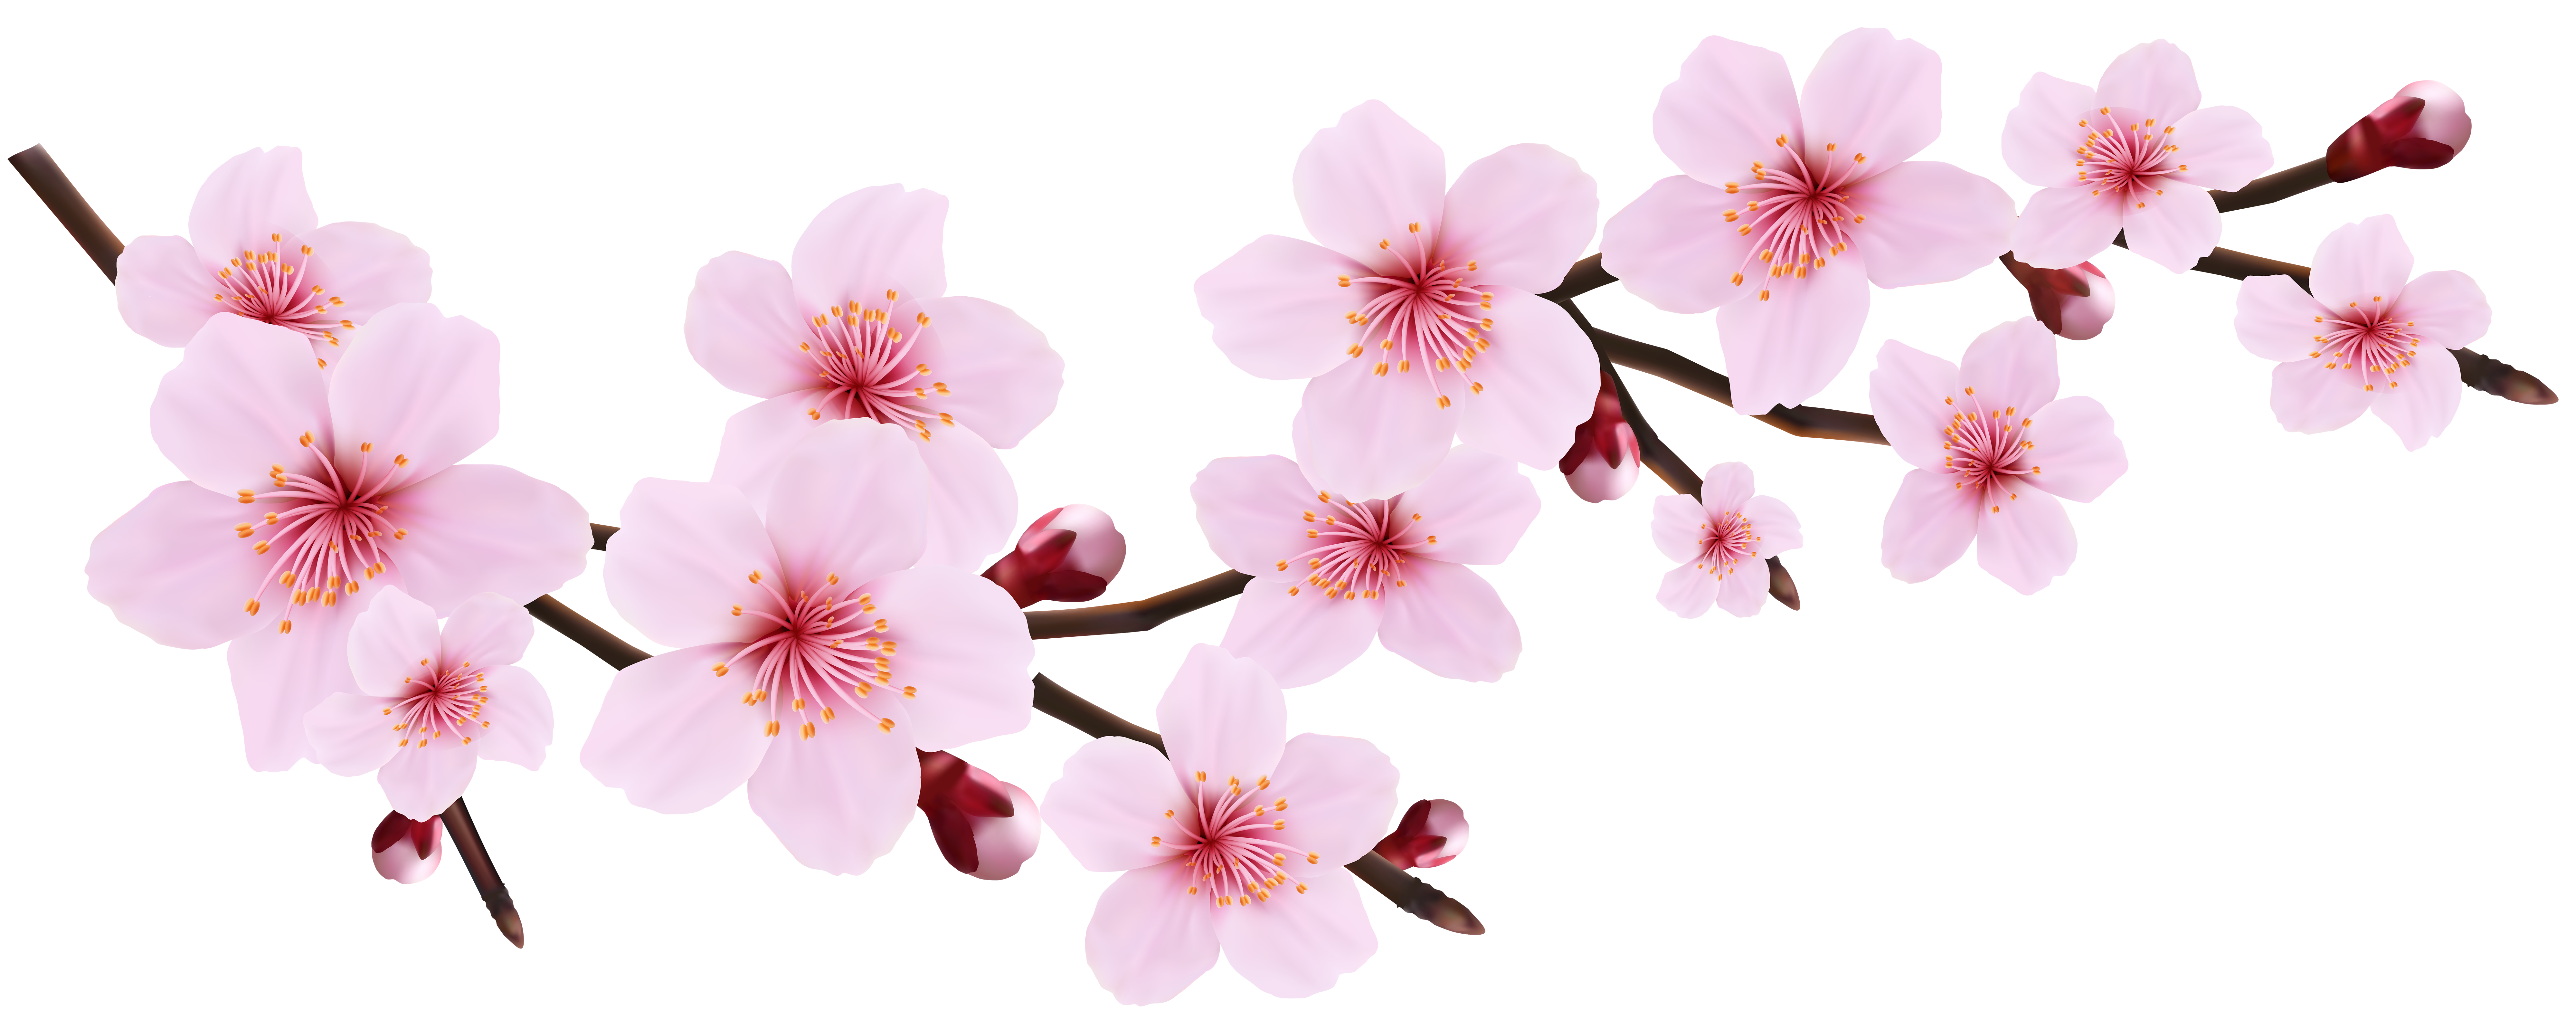 Cherry Blossom Png Images Free Download image #45485